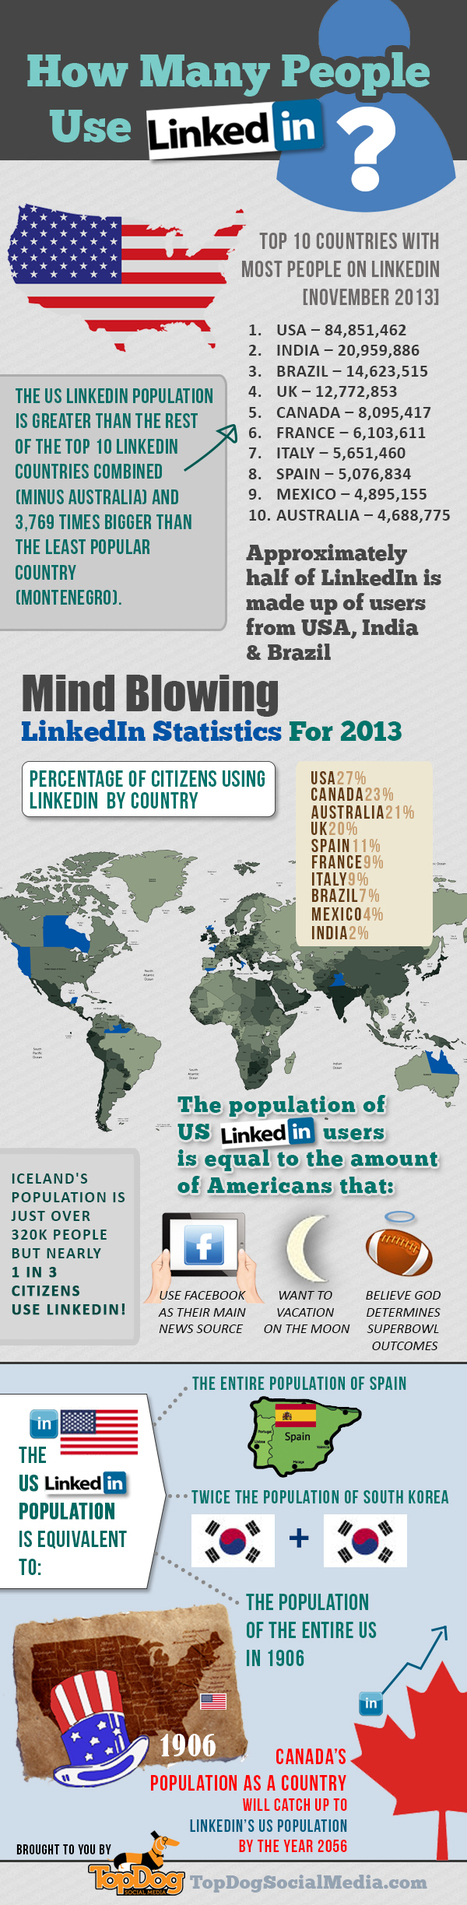 How Many People Use LinkedIn? [Infographic] | Global Diversity & Inclusion | Scoop.it